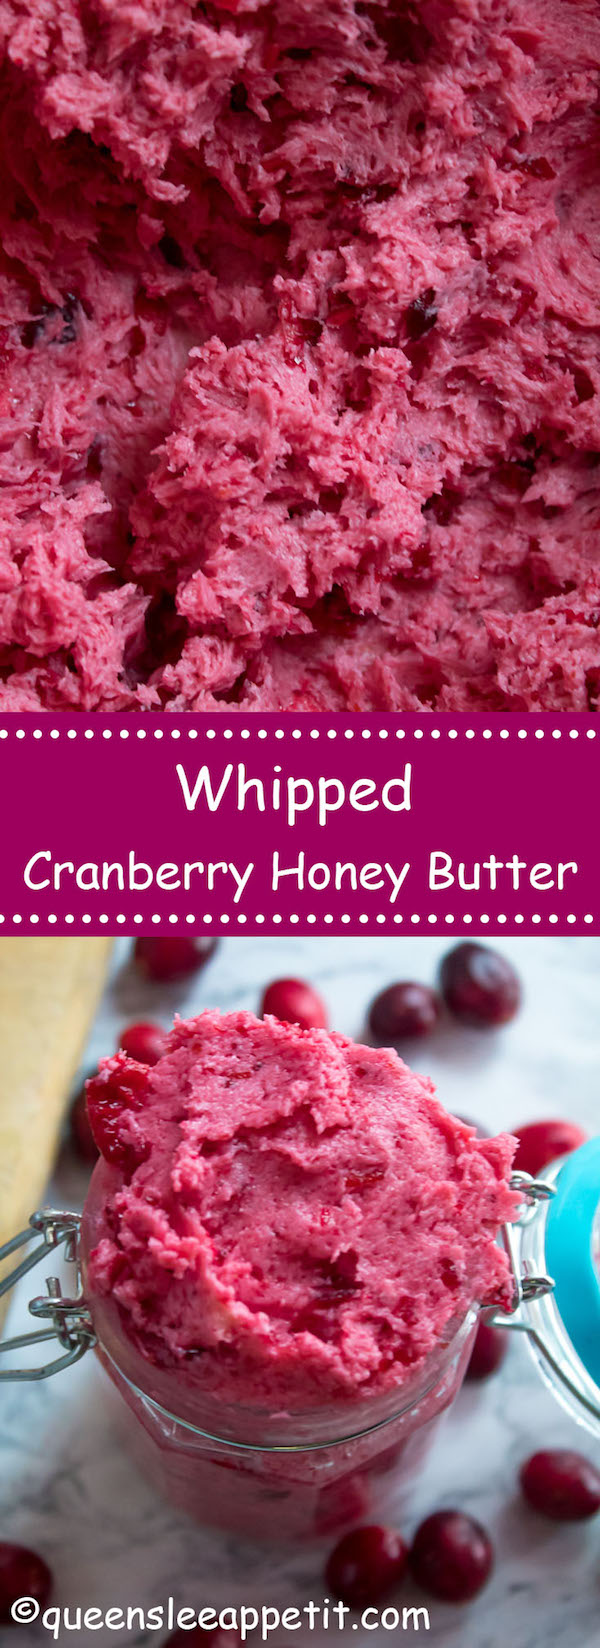 This Whipped Cranberry Honey Butter is sweet, tart, fruity and simple to make. It's perfect on toast, raisin bread, scones, dinner rolls, bagels and so much more!